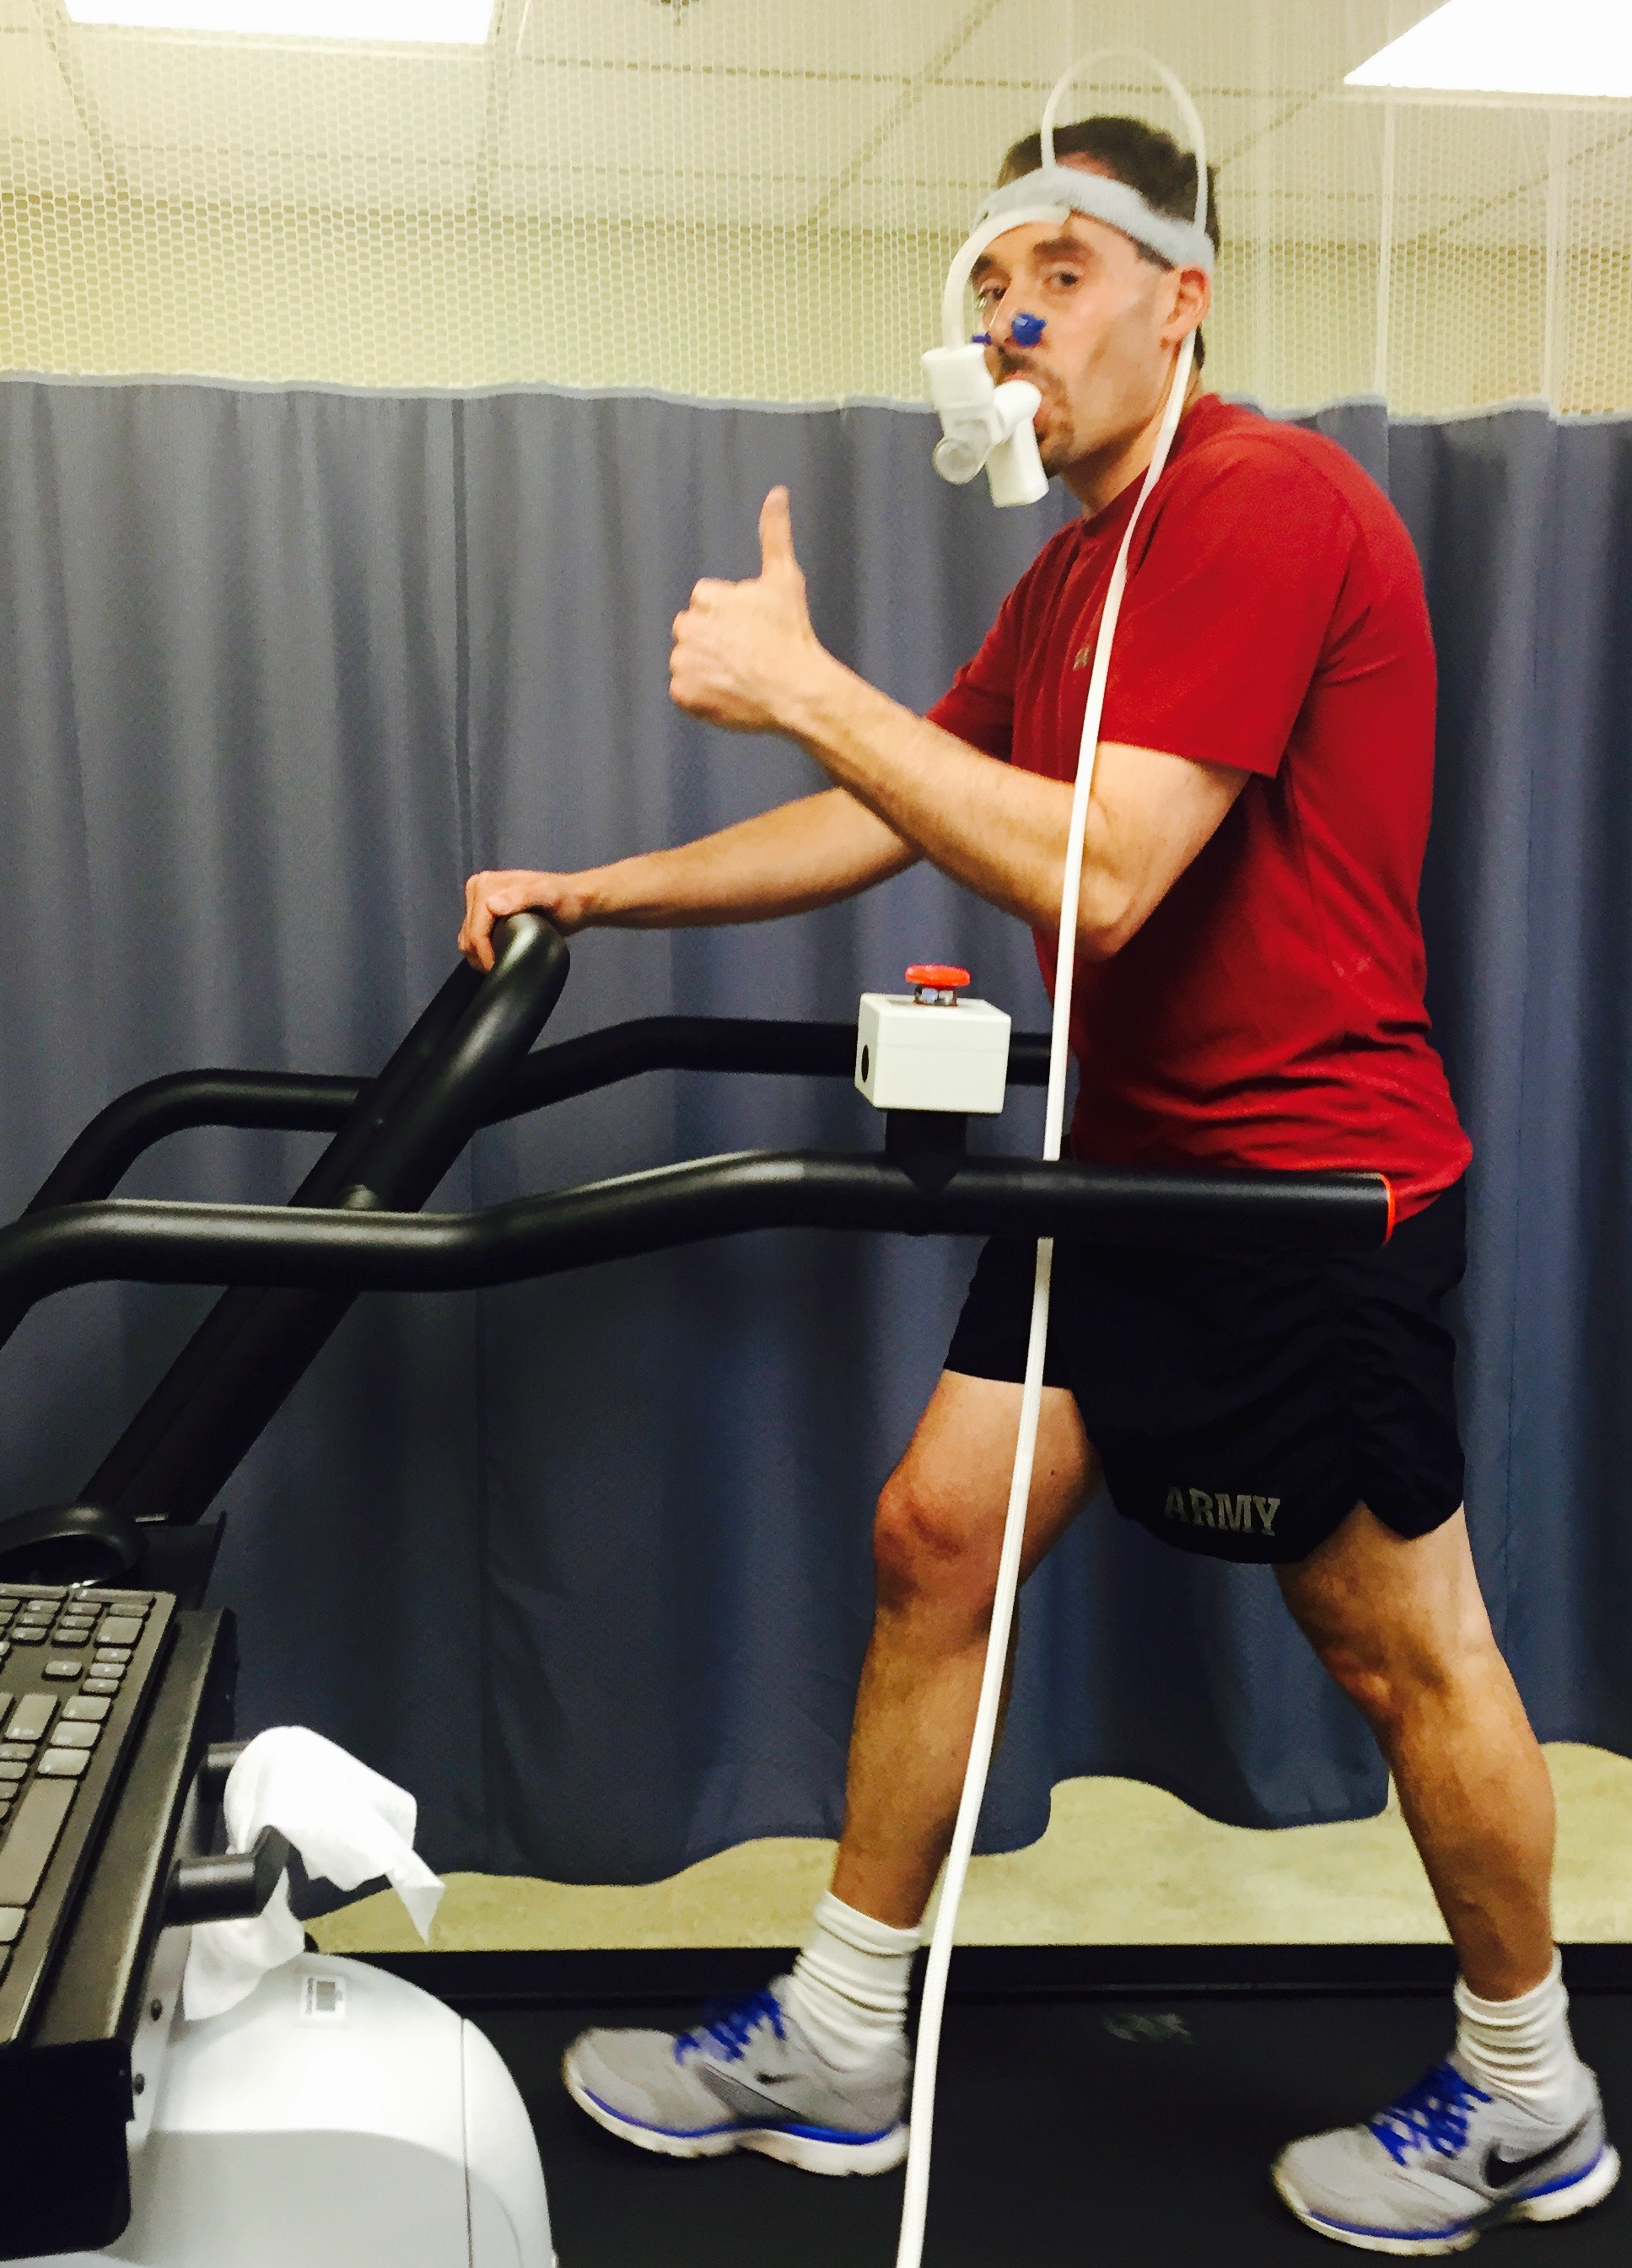 Rob having his VO2 max tested, the standard test for fitness level.